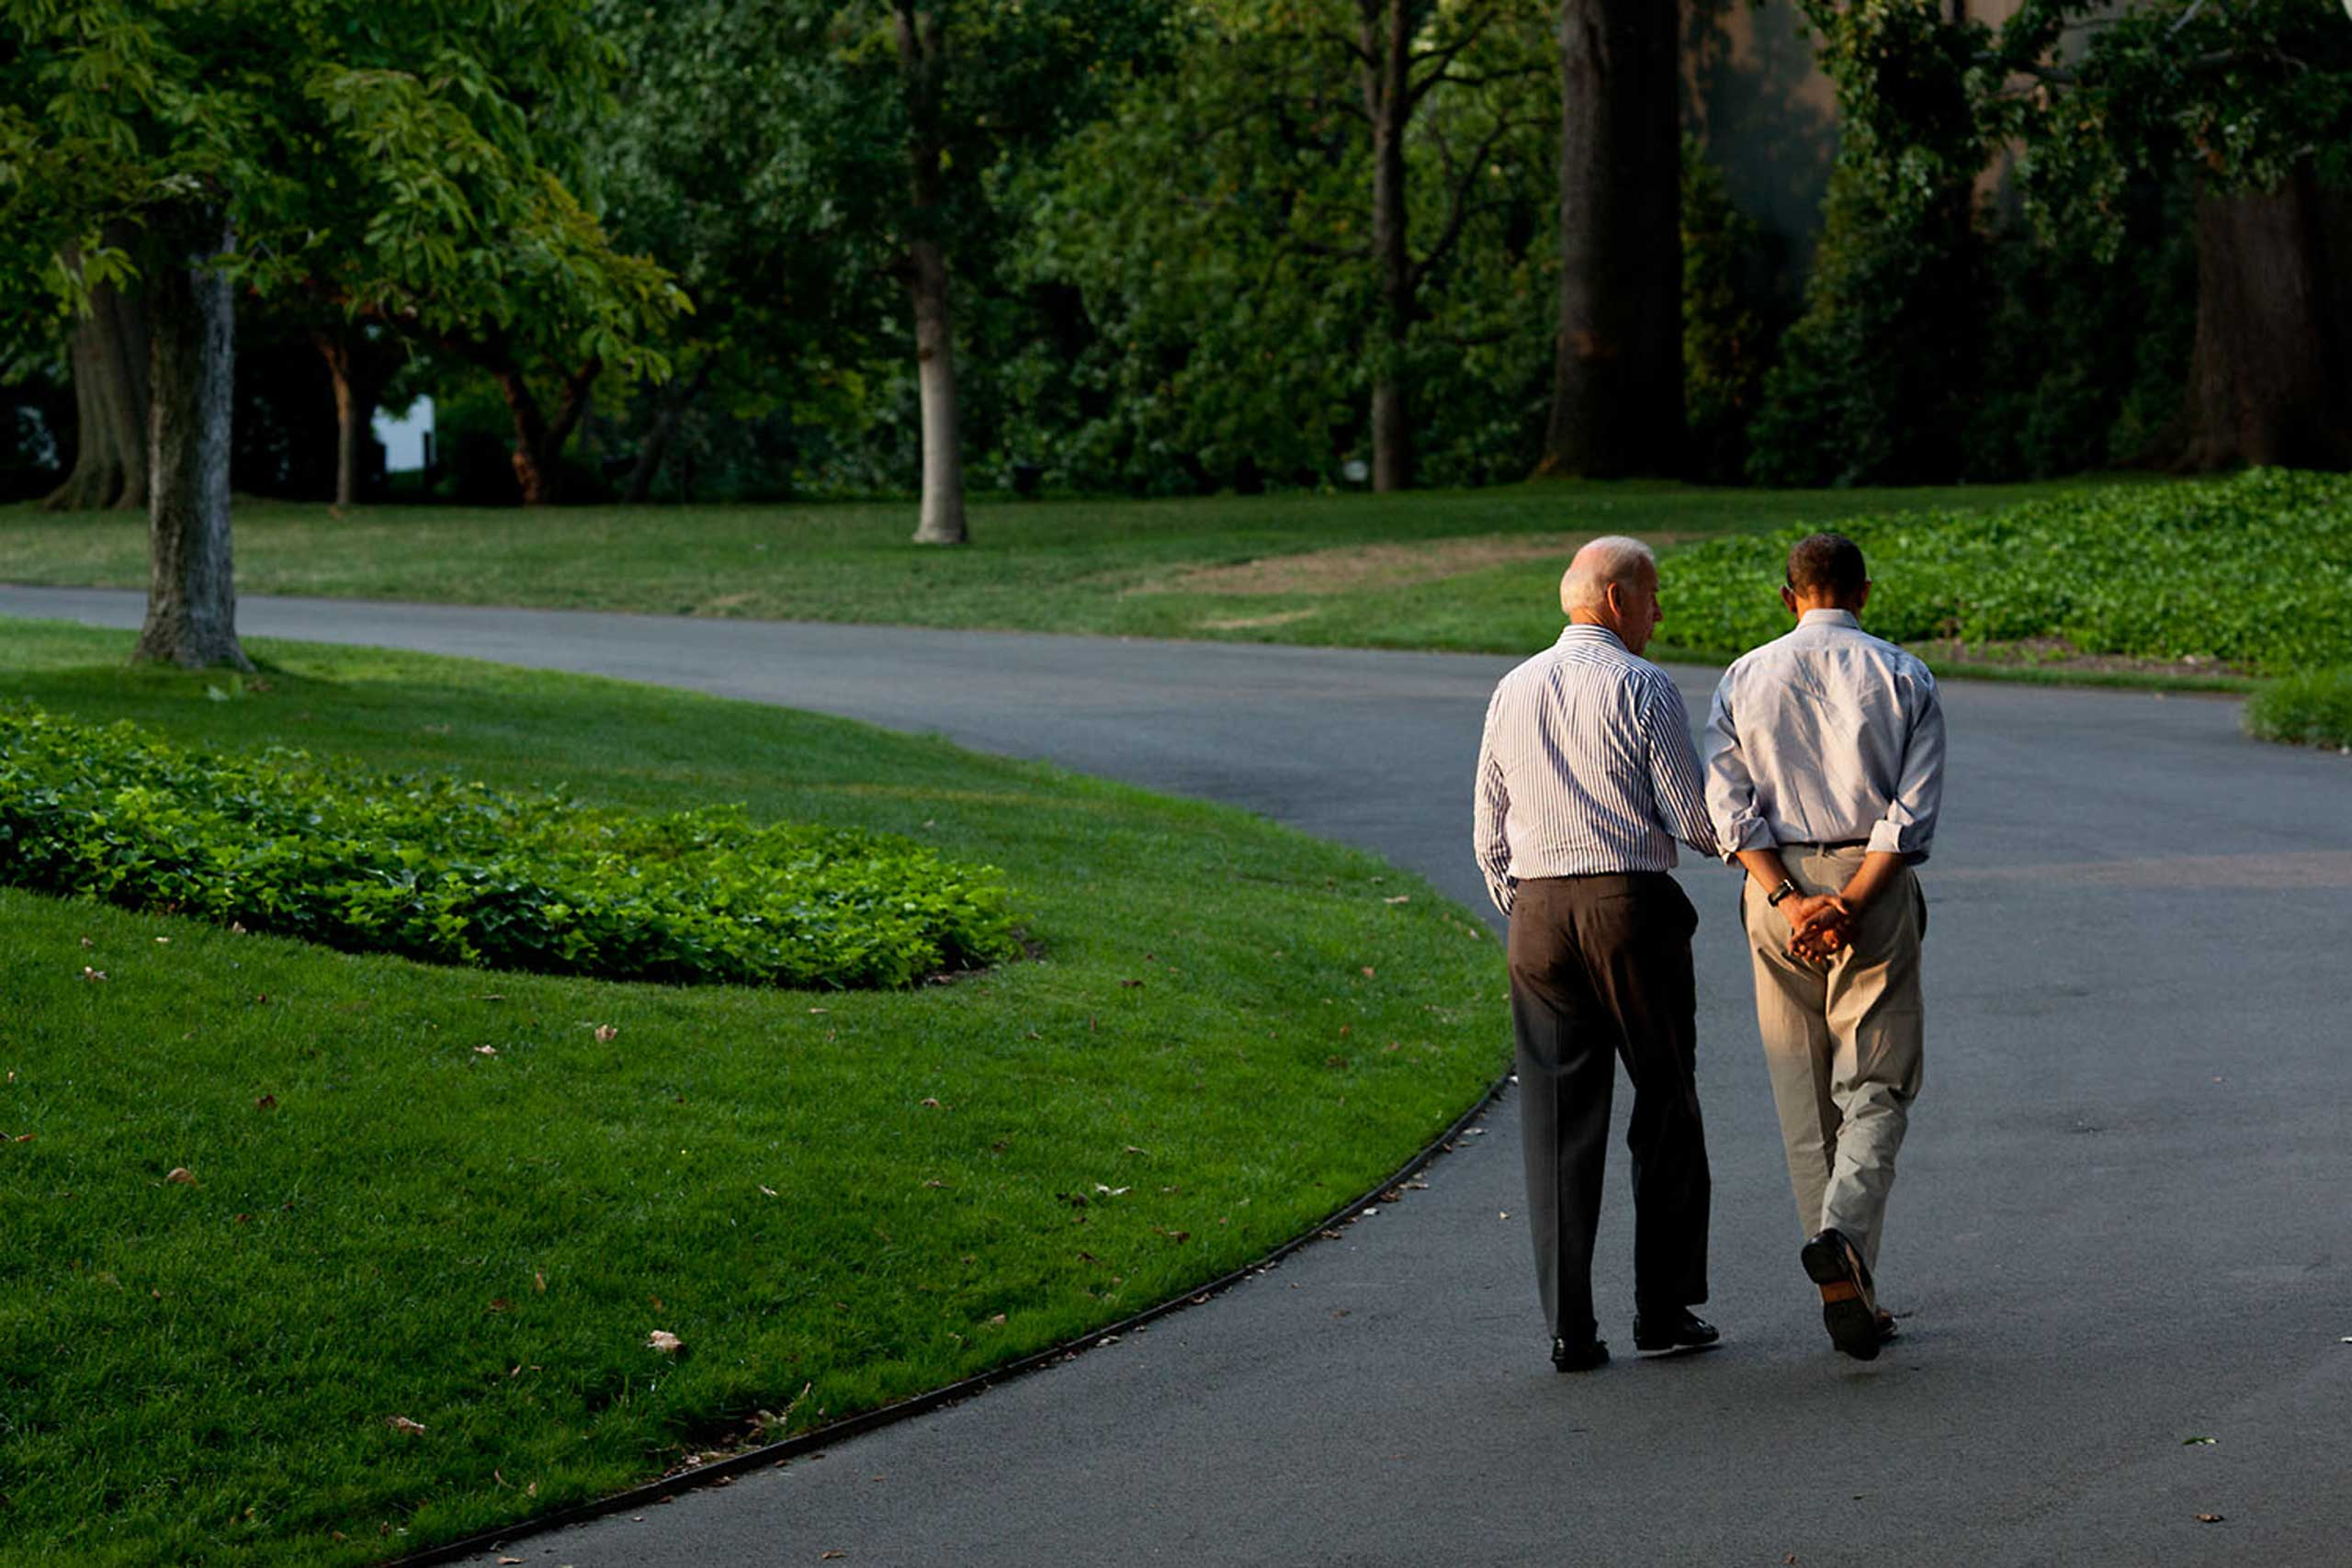 During a break in the debt limit and deficit negotiations with Congressional leaders, the President walks around the South Lawn drive of the White House with the Vice President on Sunday, July 24, 2011. As they walked, I was trying to catch them where there was one pocket of sunlight seeping through the trees.